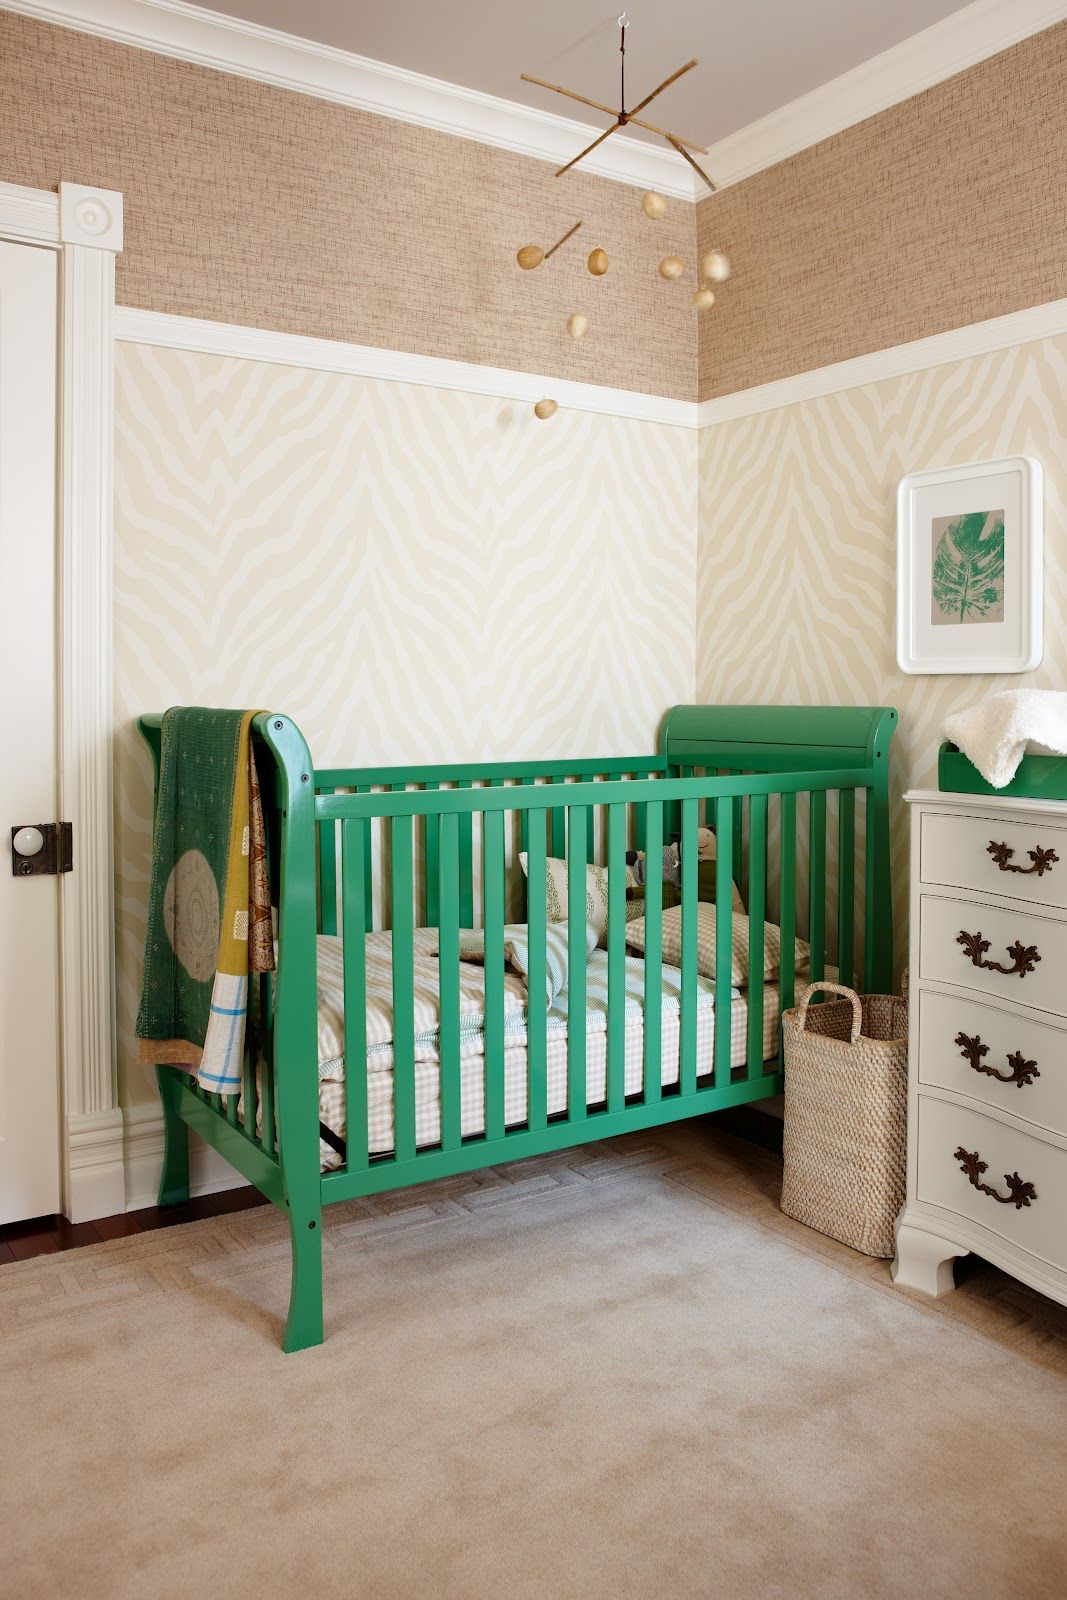 Design Maze nursery beige and white with green accents | nursery ...